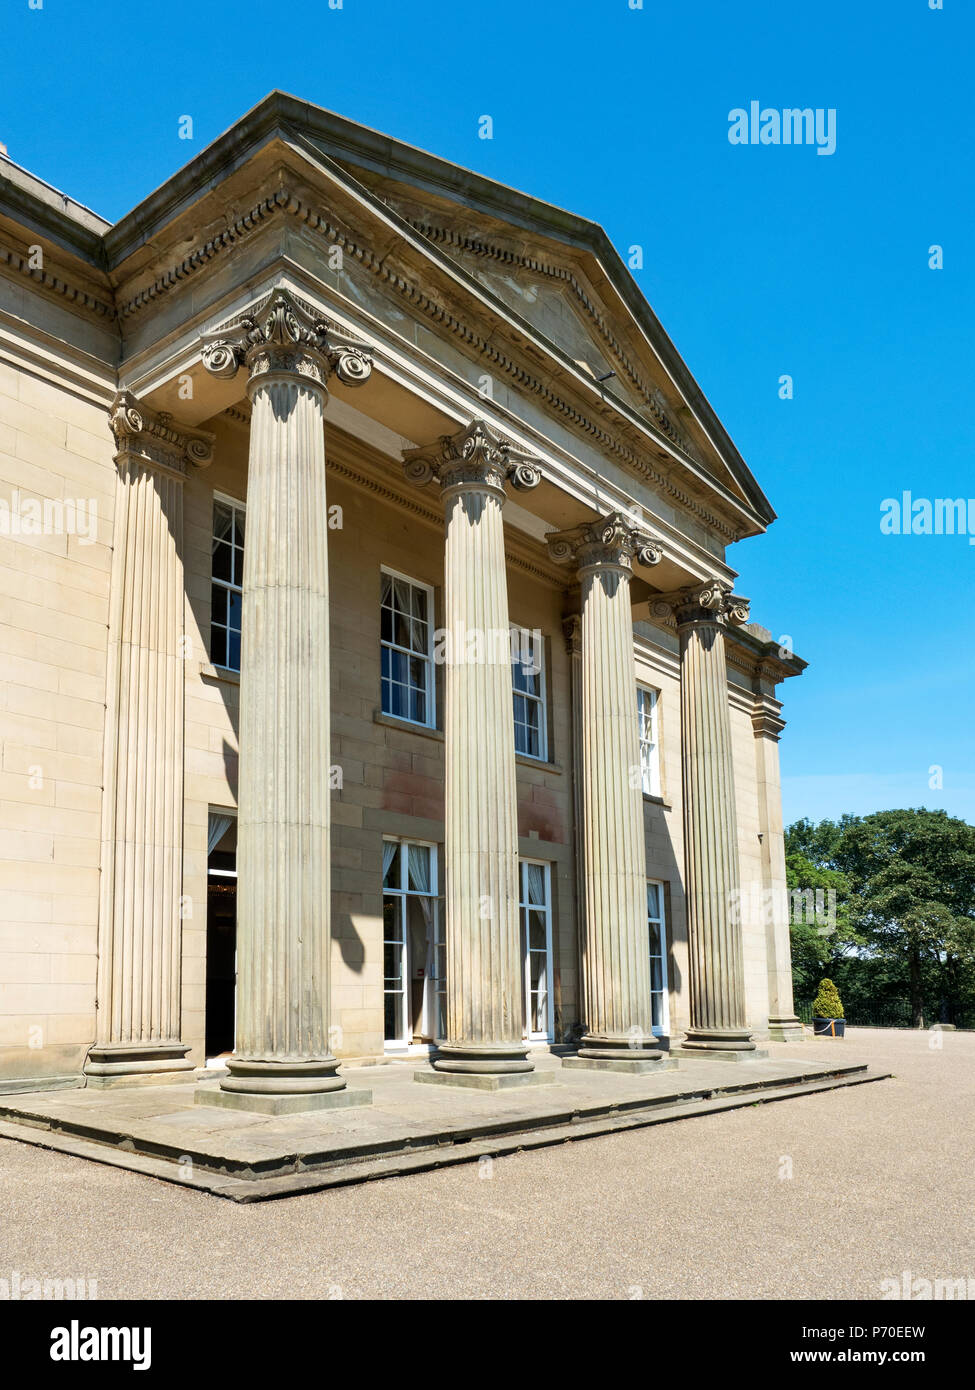 The Mansion in Roundhay Park Roundhay Leeds West Yorkshire England Stock Photo